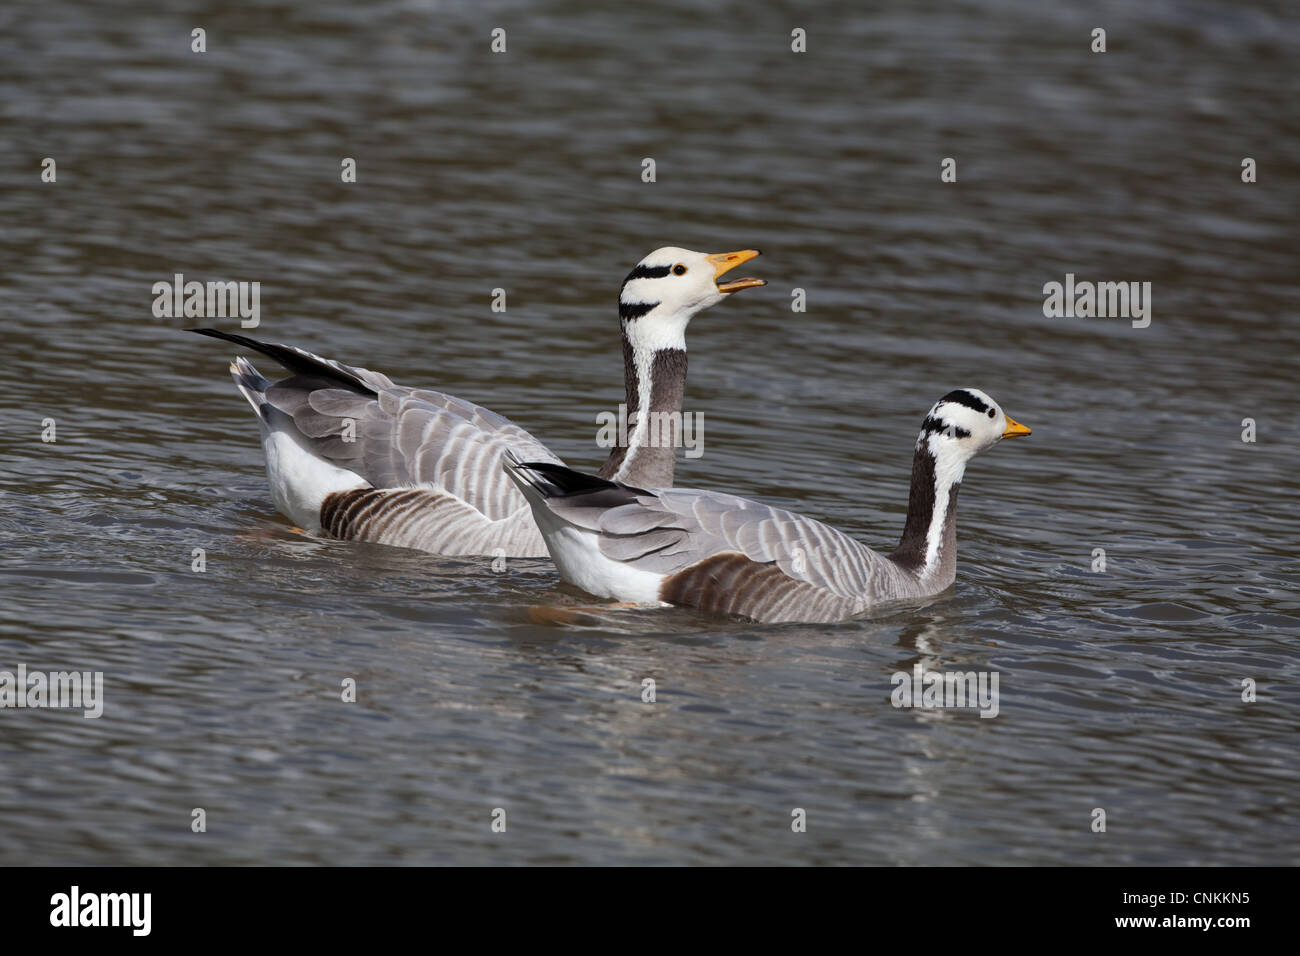 Bar-headed Goose (Anser indicus).  Pair; gander or male, left, calling. Shadowing goose or female, whilst swimming. - Stock Image